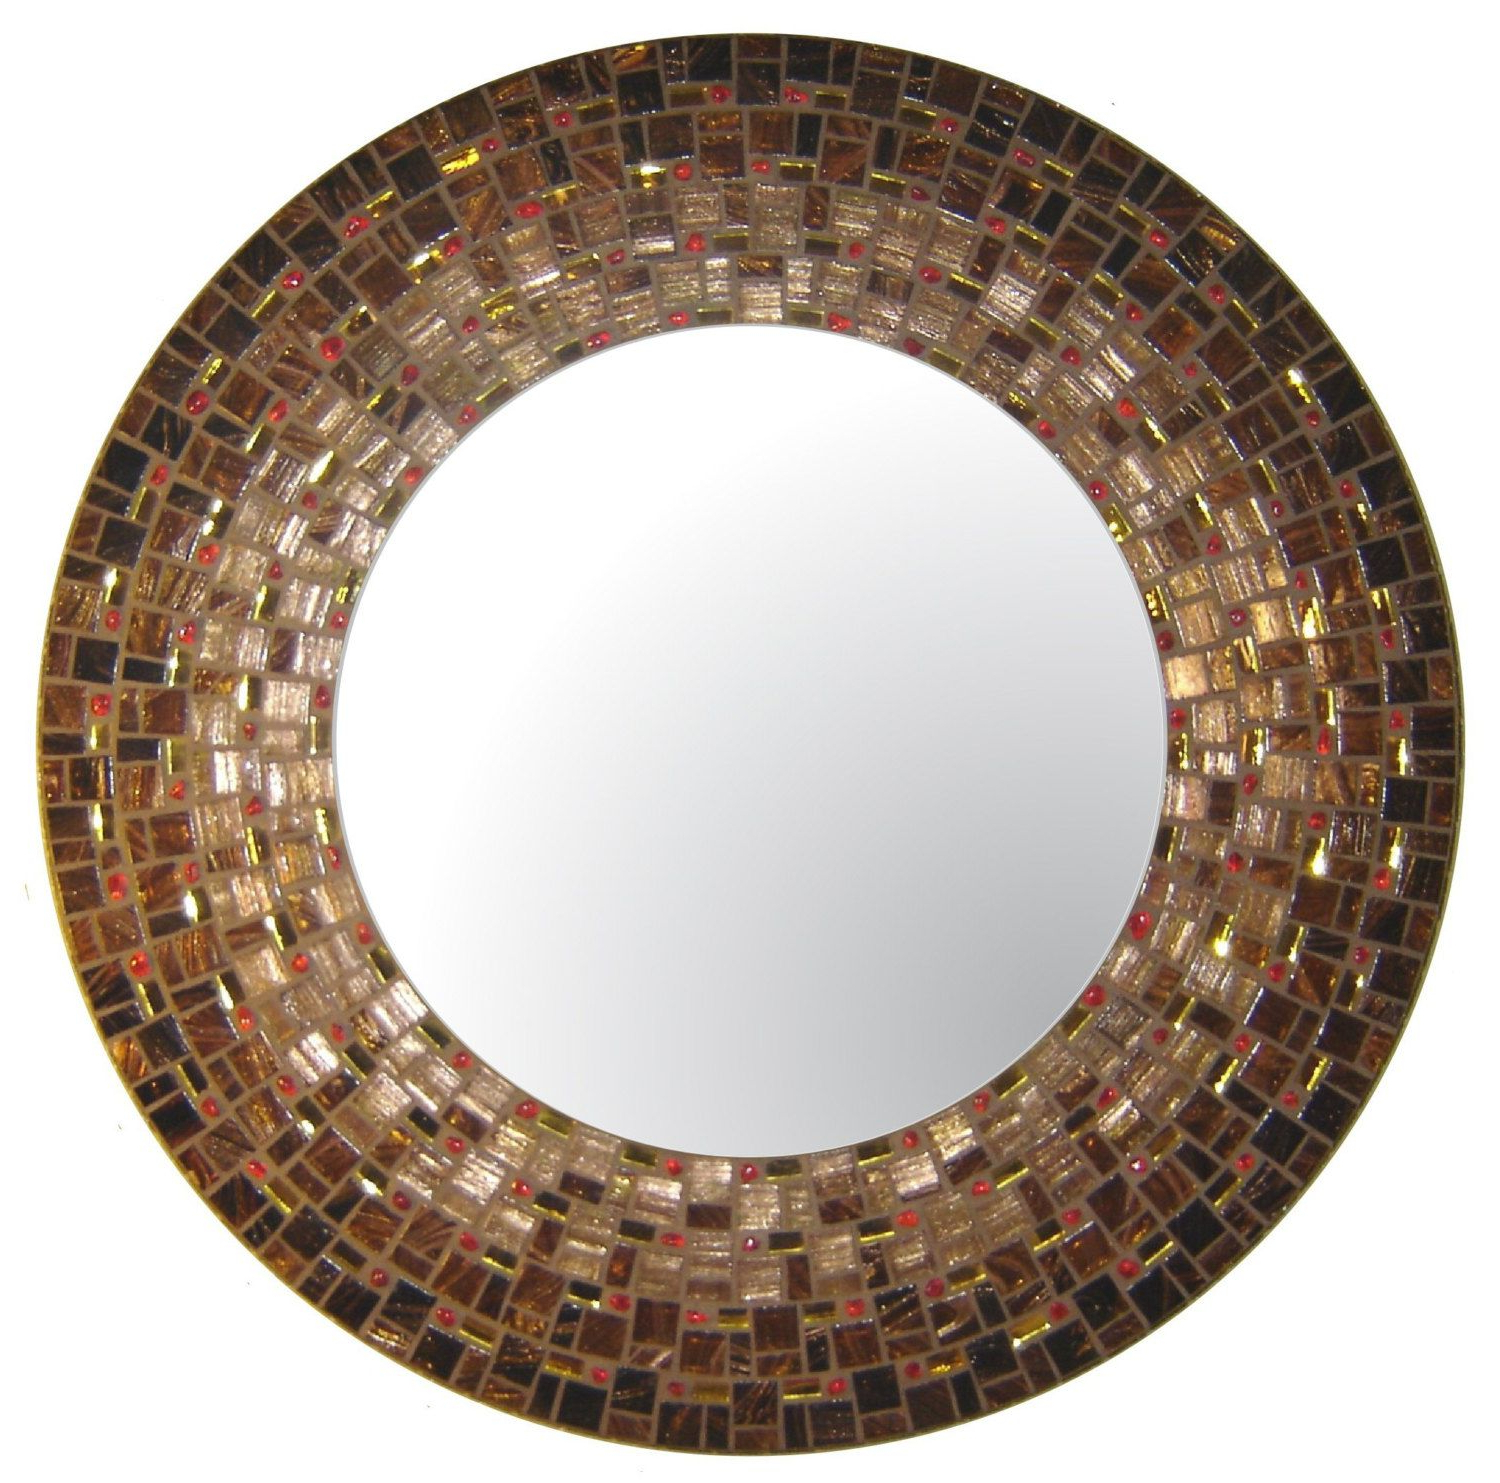 Moroccan Mosaic Mirror Brown Copper Gold & Red Throughout Most Recently Released Round Mosaic Wall Mirrors (View 12 of 20)